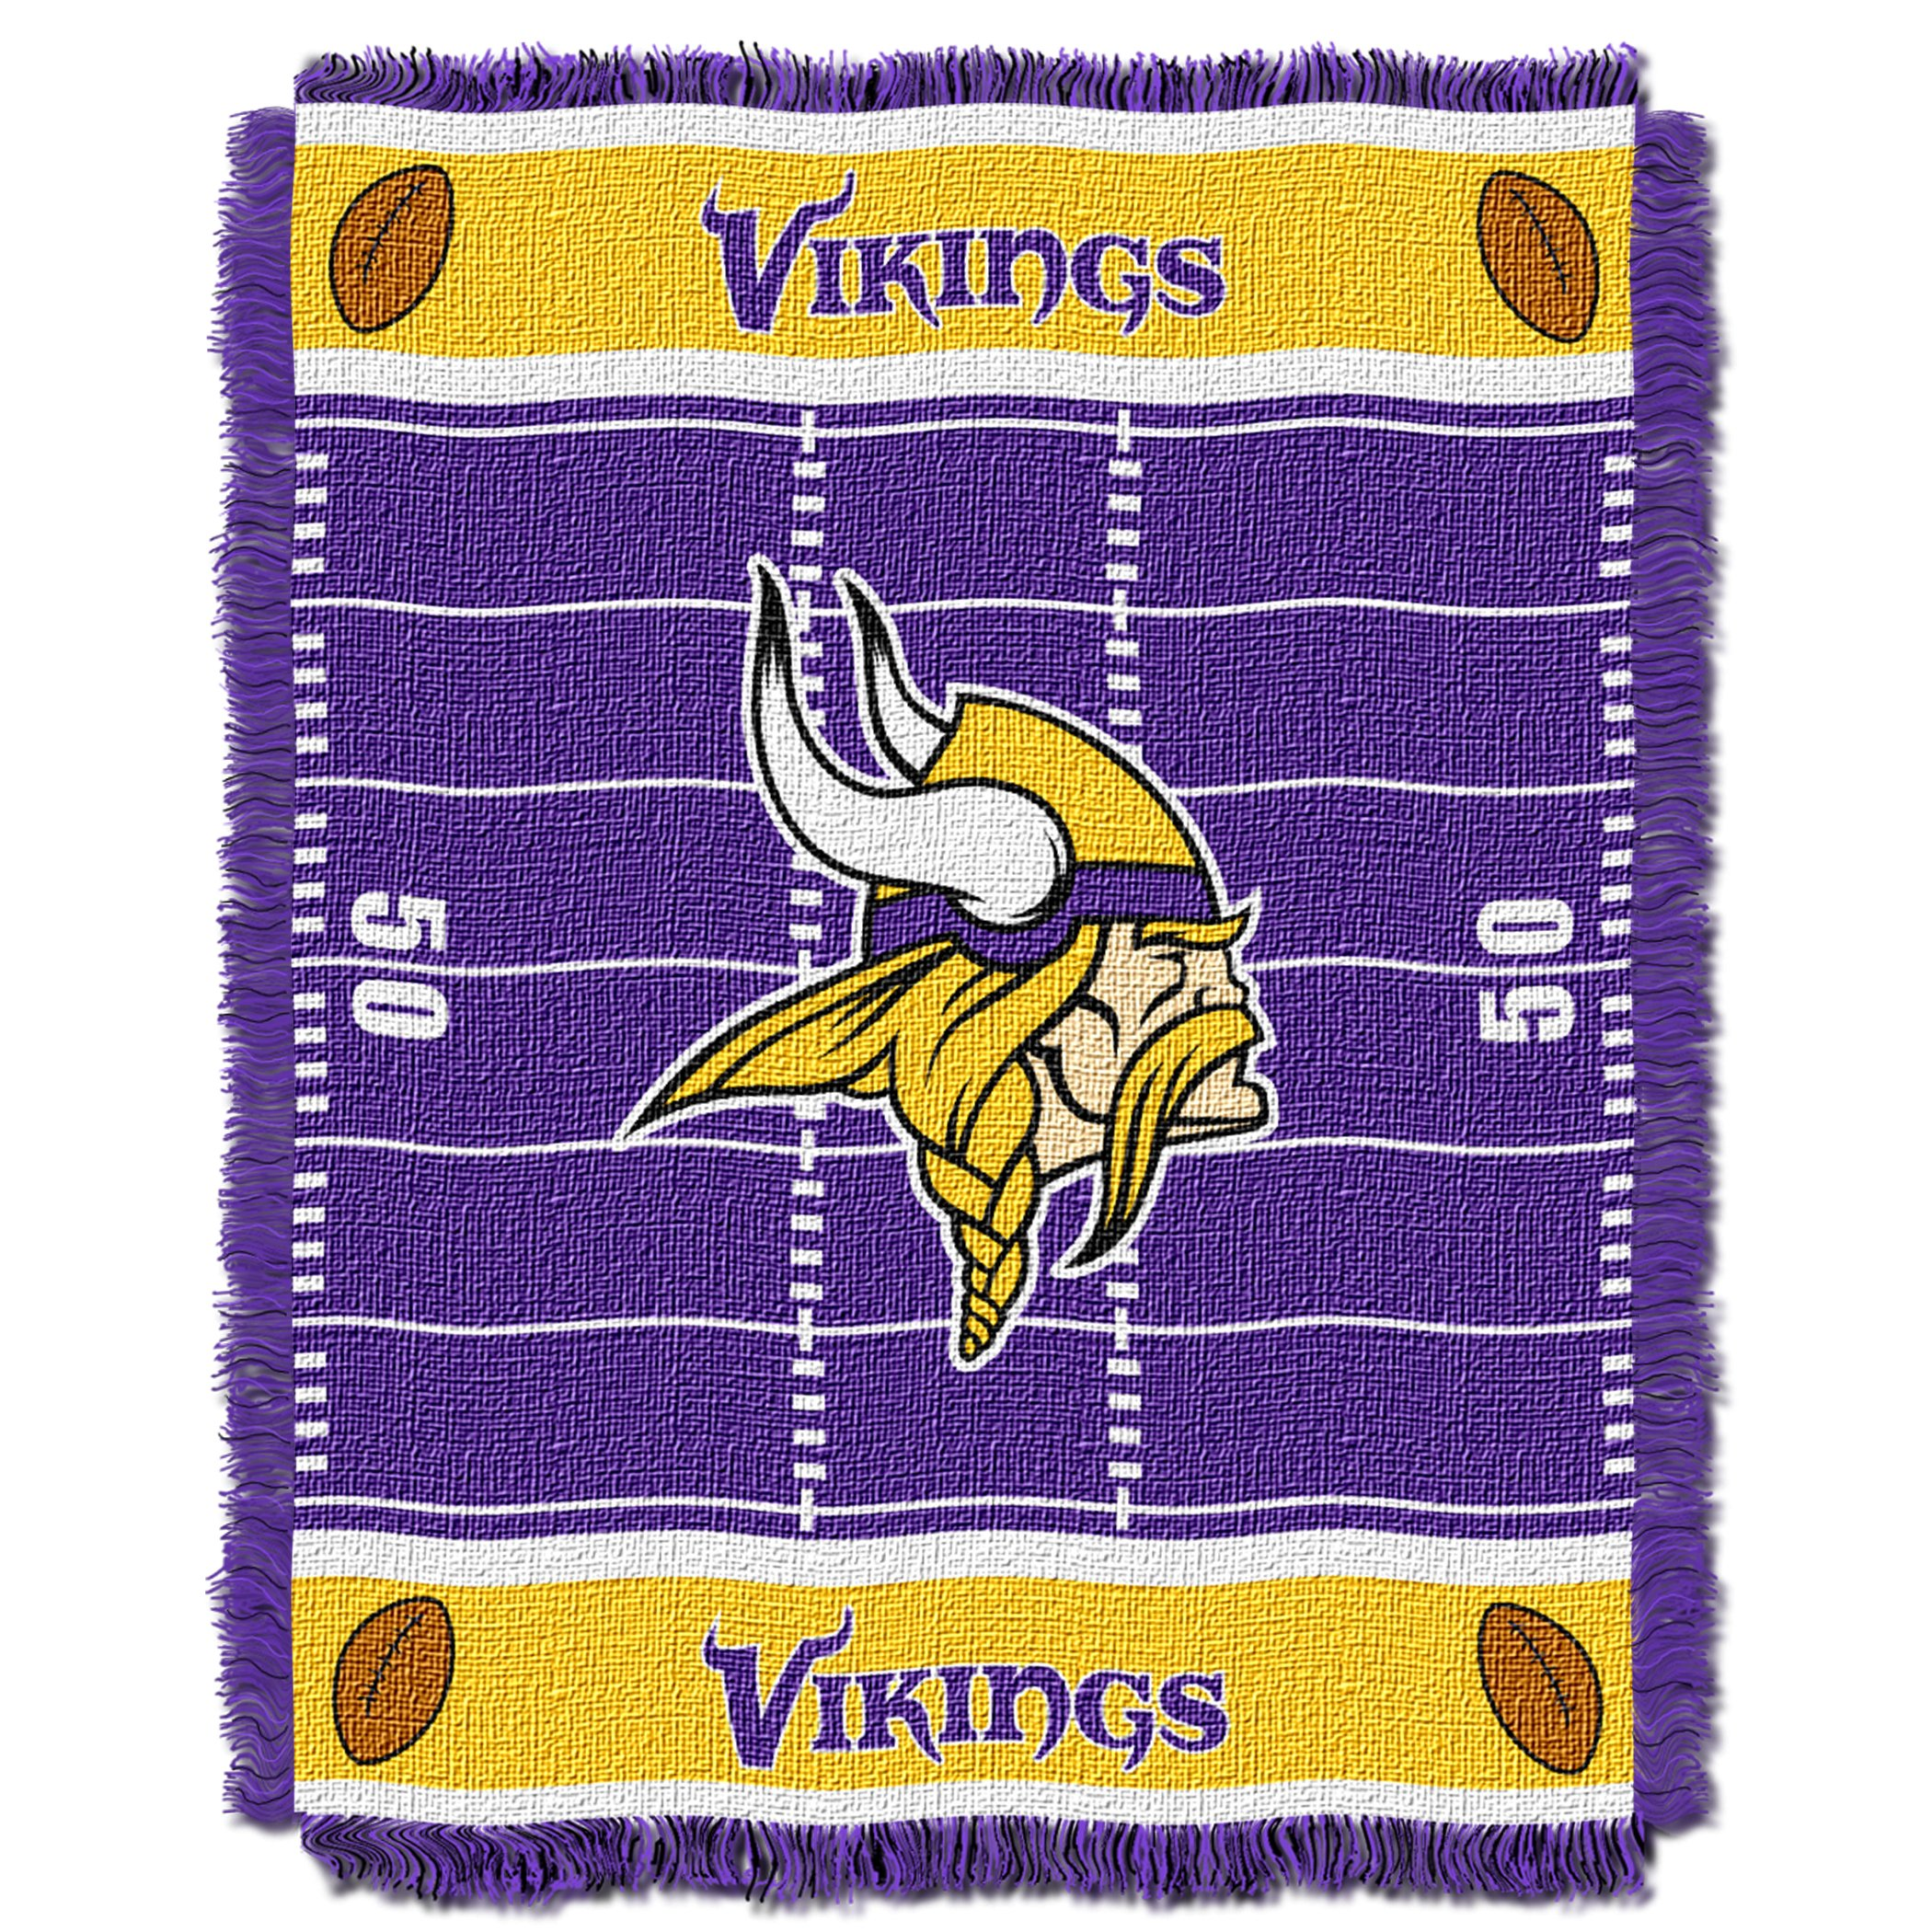 The Northwest Company Officially Licensed NFL Minnesota Vikings Field Bear Woven Jacquard Baby Throw Blanket, 36'' x 46'', Multi Color by The Northwest Company